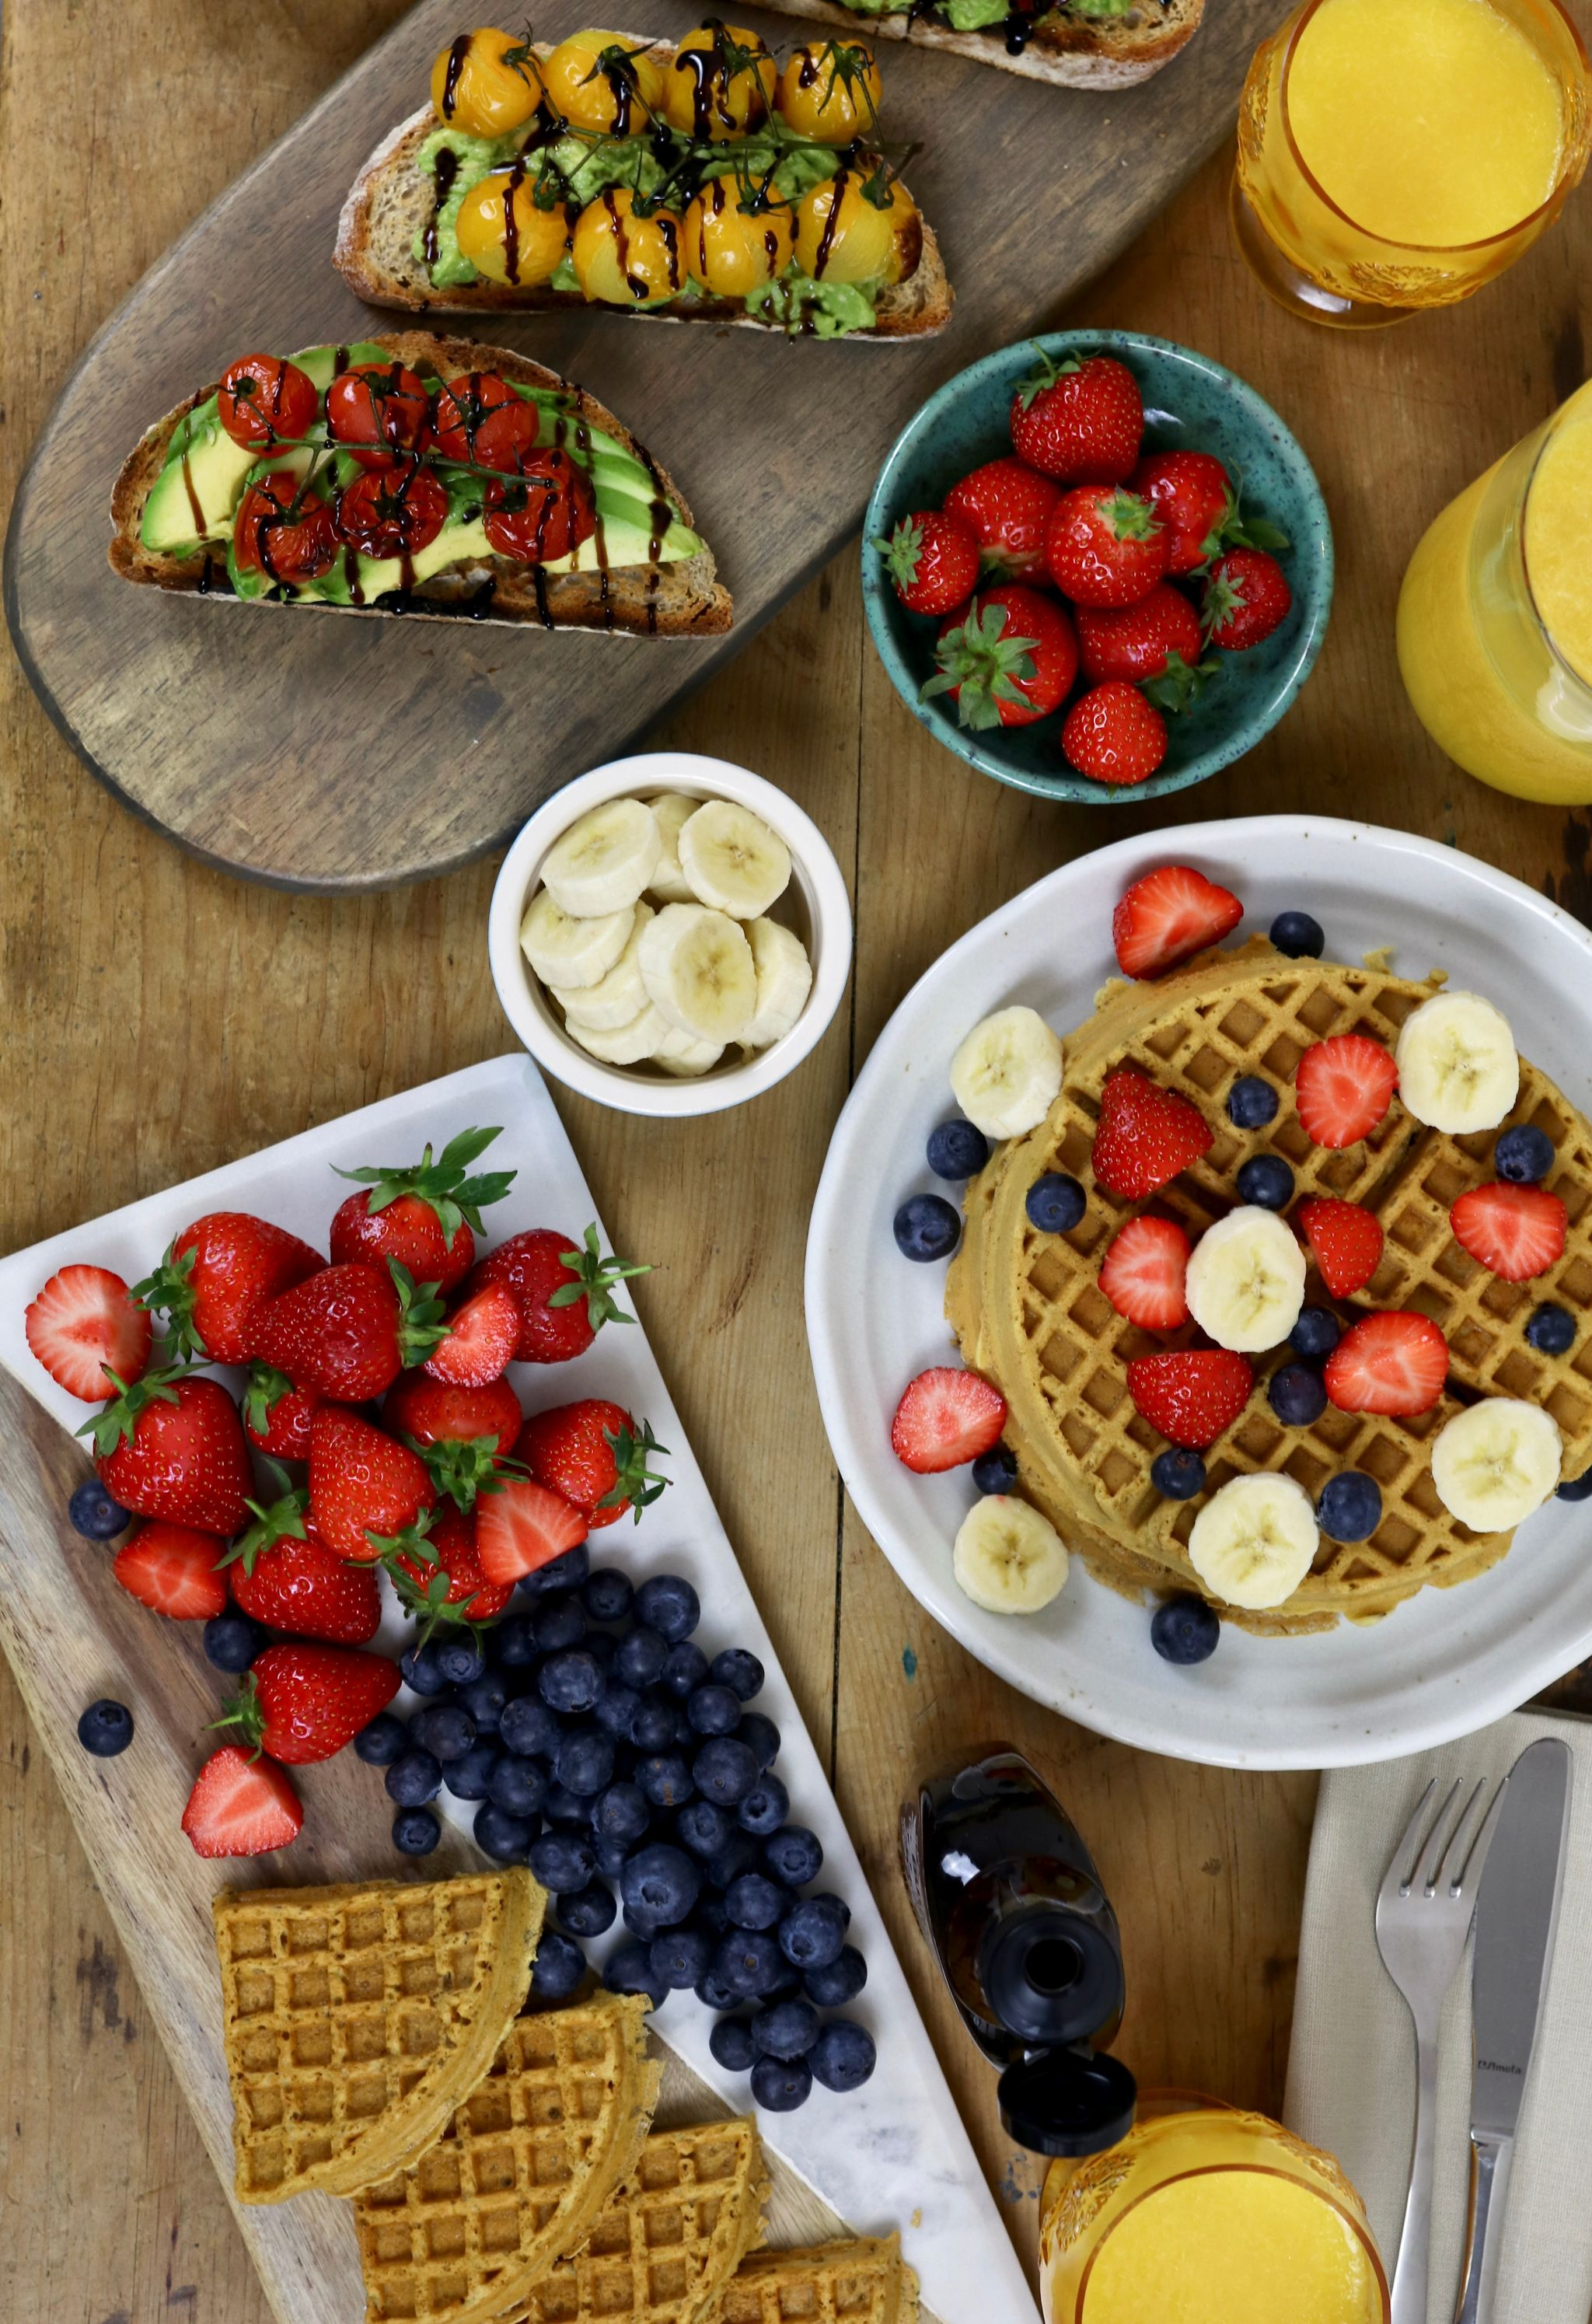 Brunch at home - vegan waffles, avocado toast, strawberries and blueberries